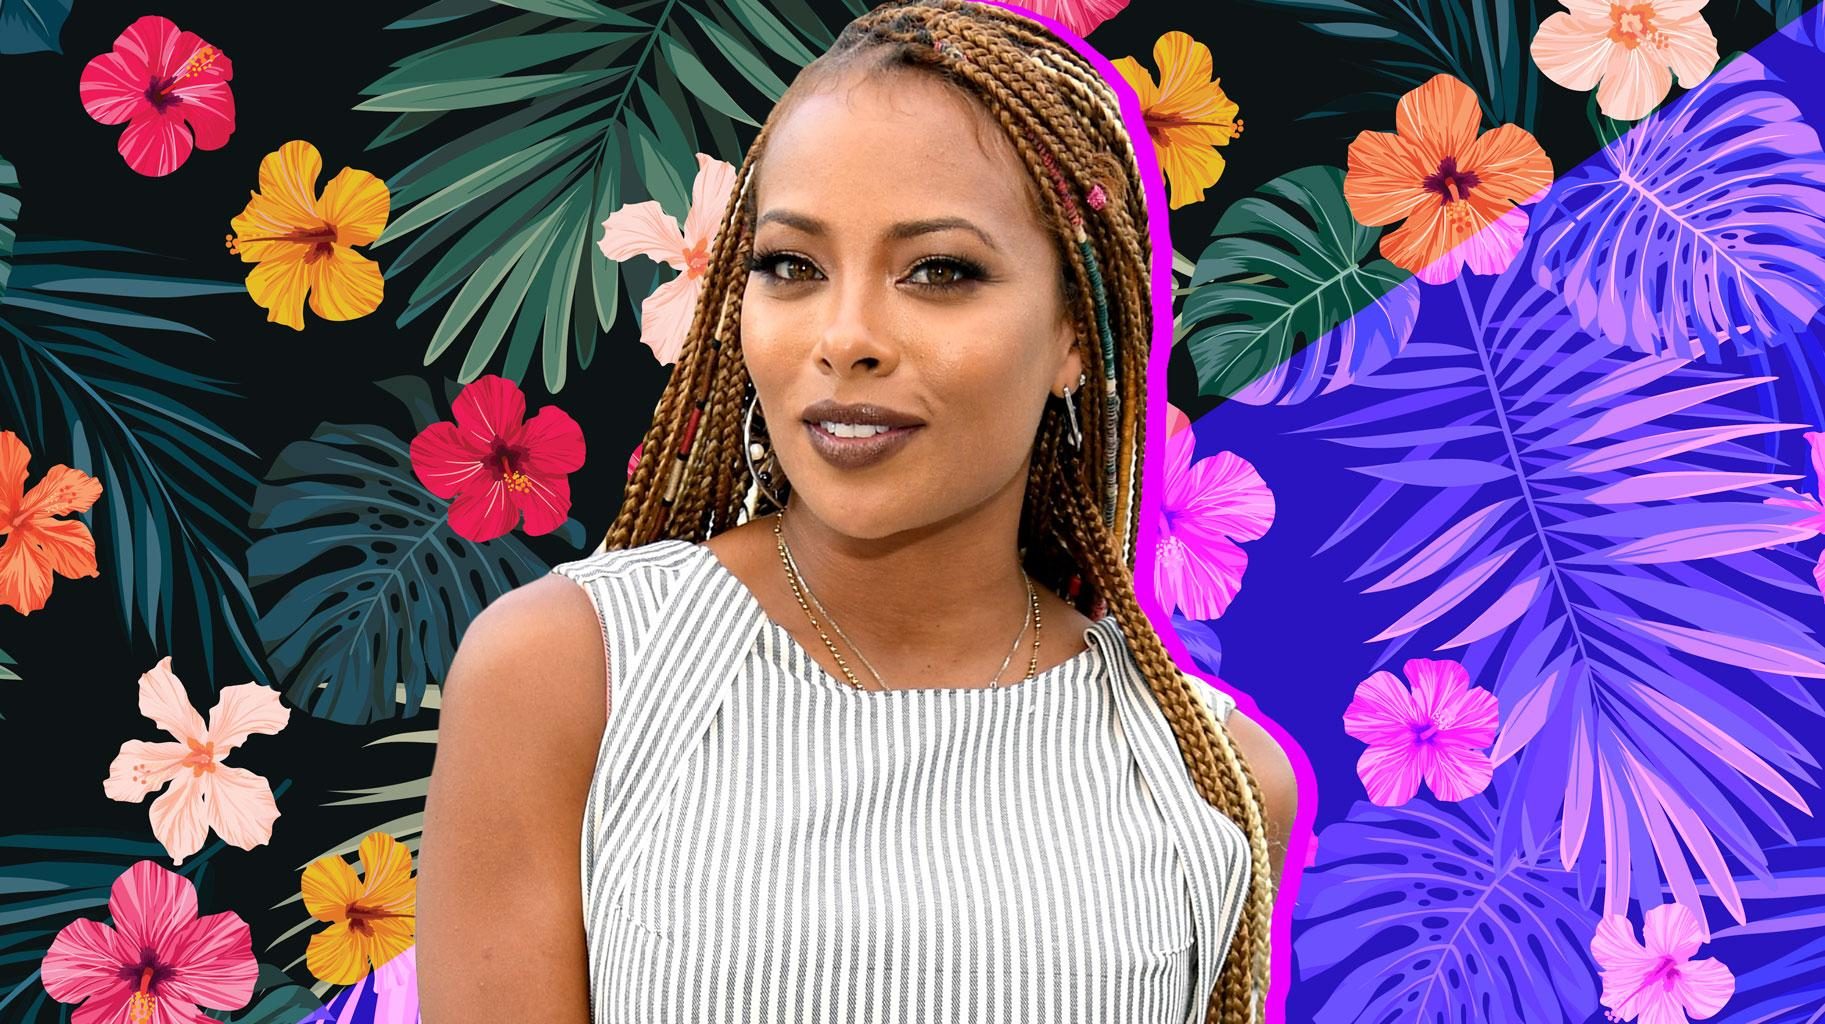 Eva Marcille Poses With Kenya Moore At Cynthia Bailey's Wedding - See Them Glowing In White!